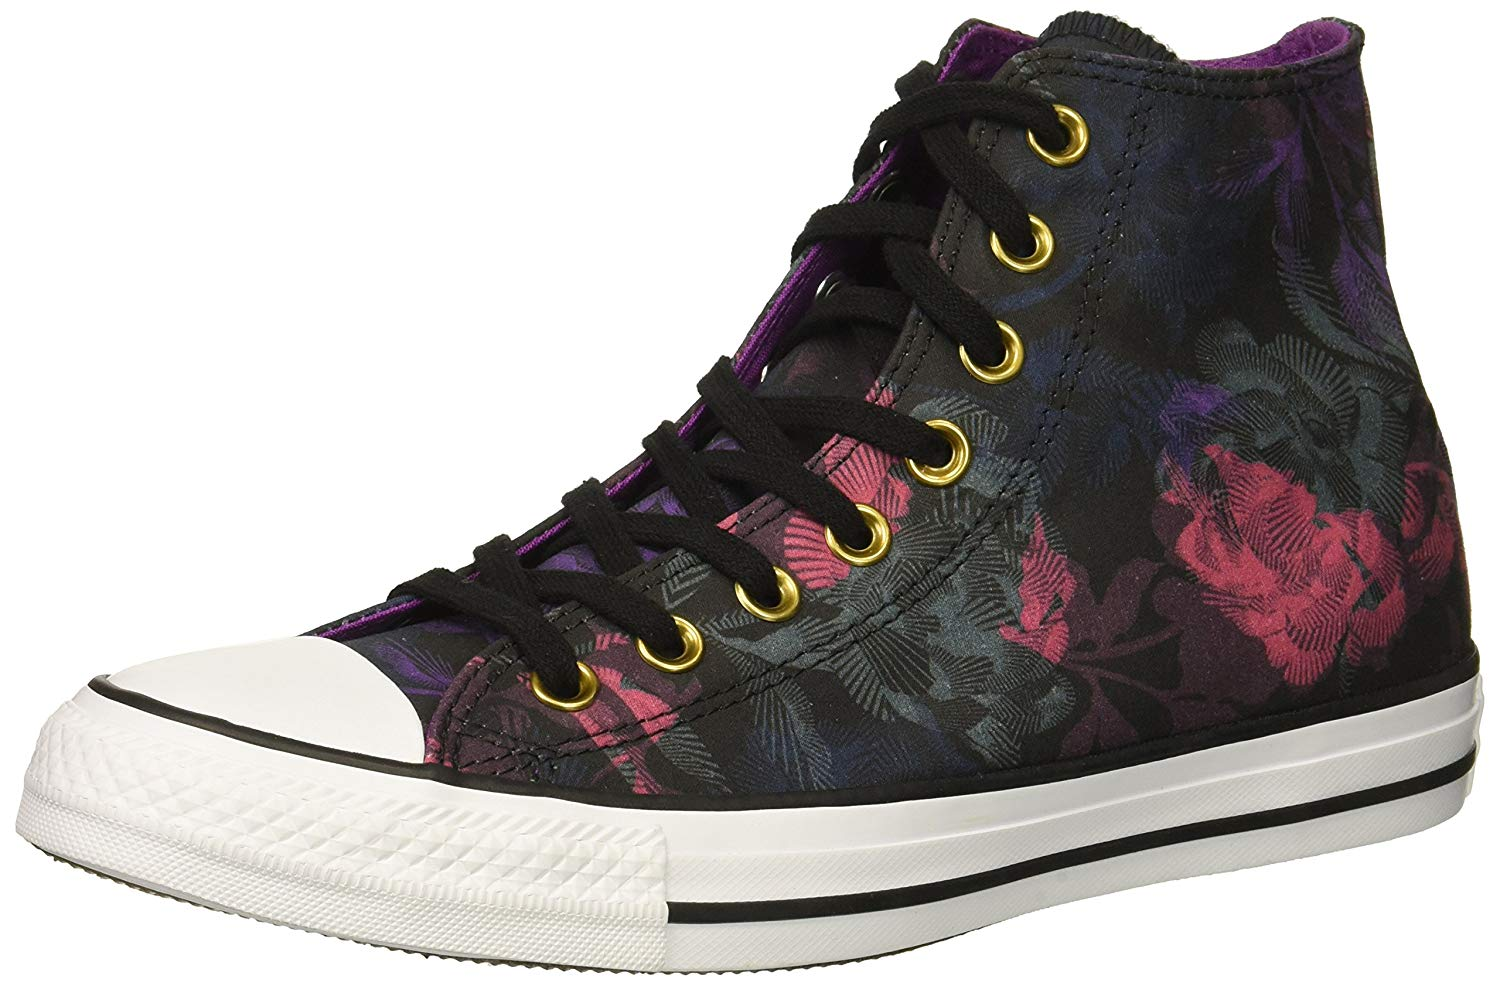 Amazon.com | Converse Women's Chuck Taylor All Star Floral Print HIGH TOP Sneaker, Black/Pink pop/White, 10.5 M US | Fashion Sneakers